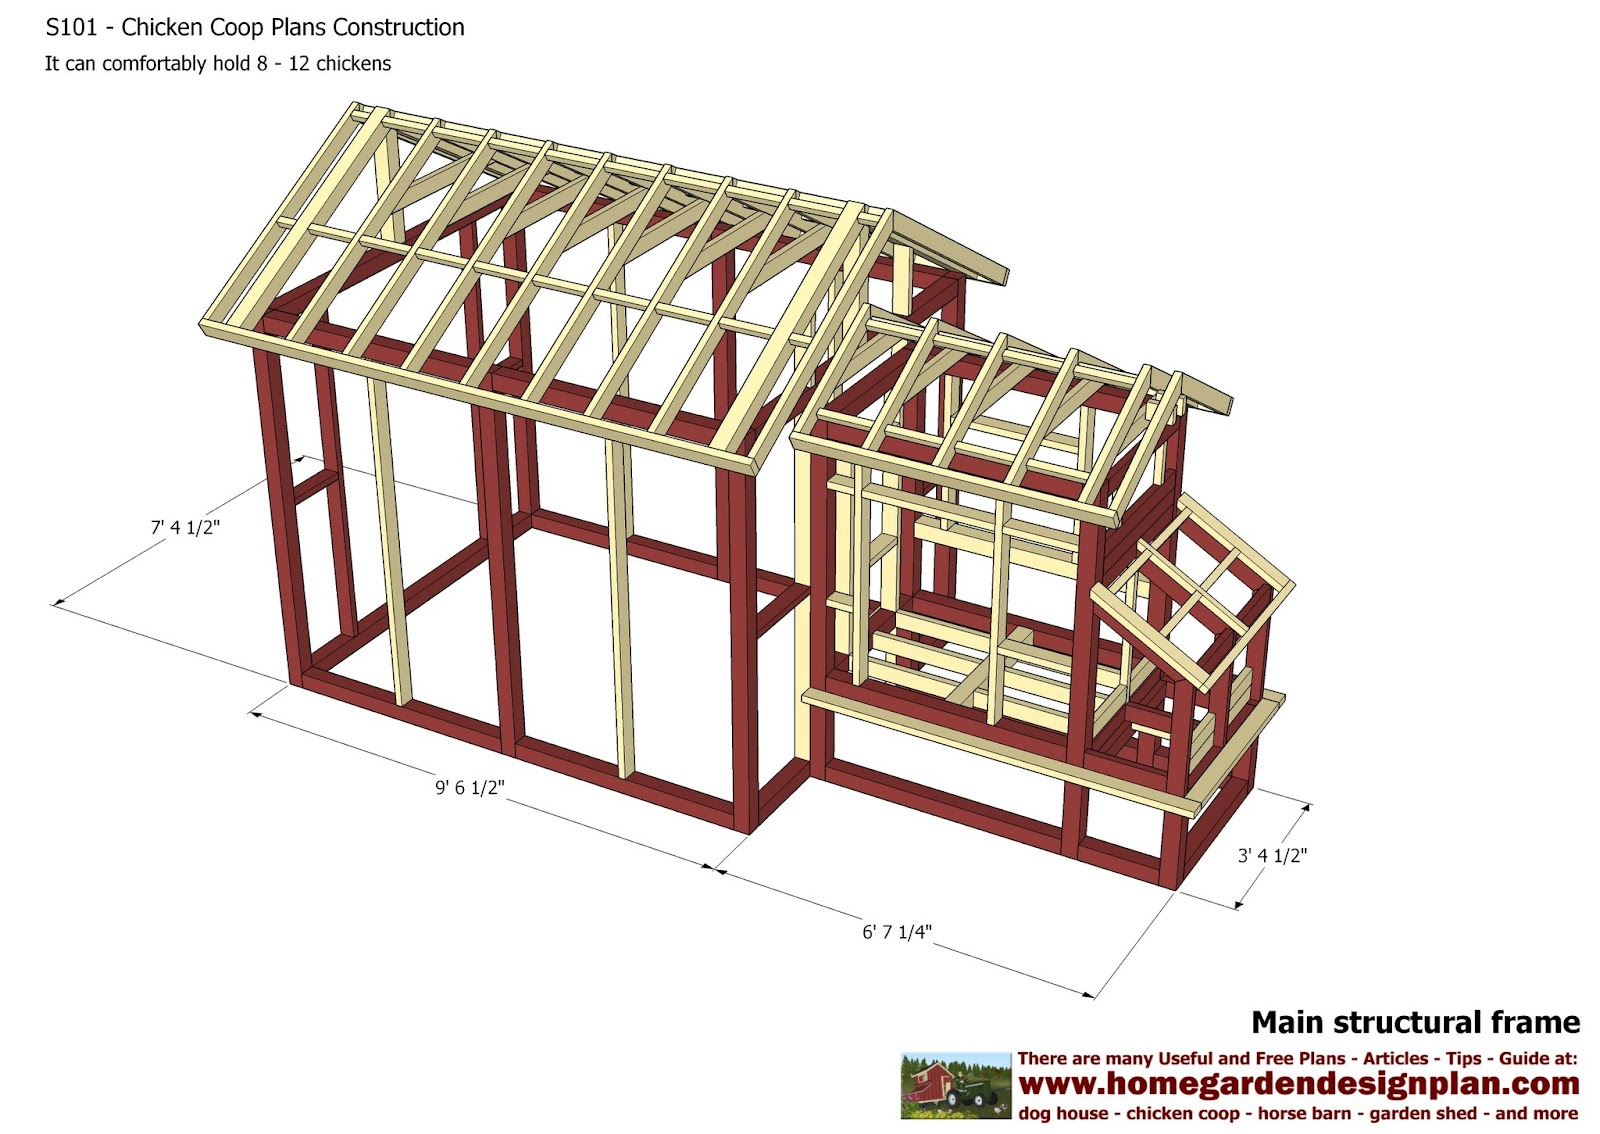 Home garden plans s101 chicken coop plans construction for Poultry house plans for 100 chickens